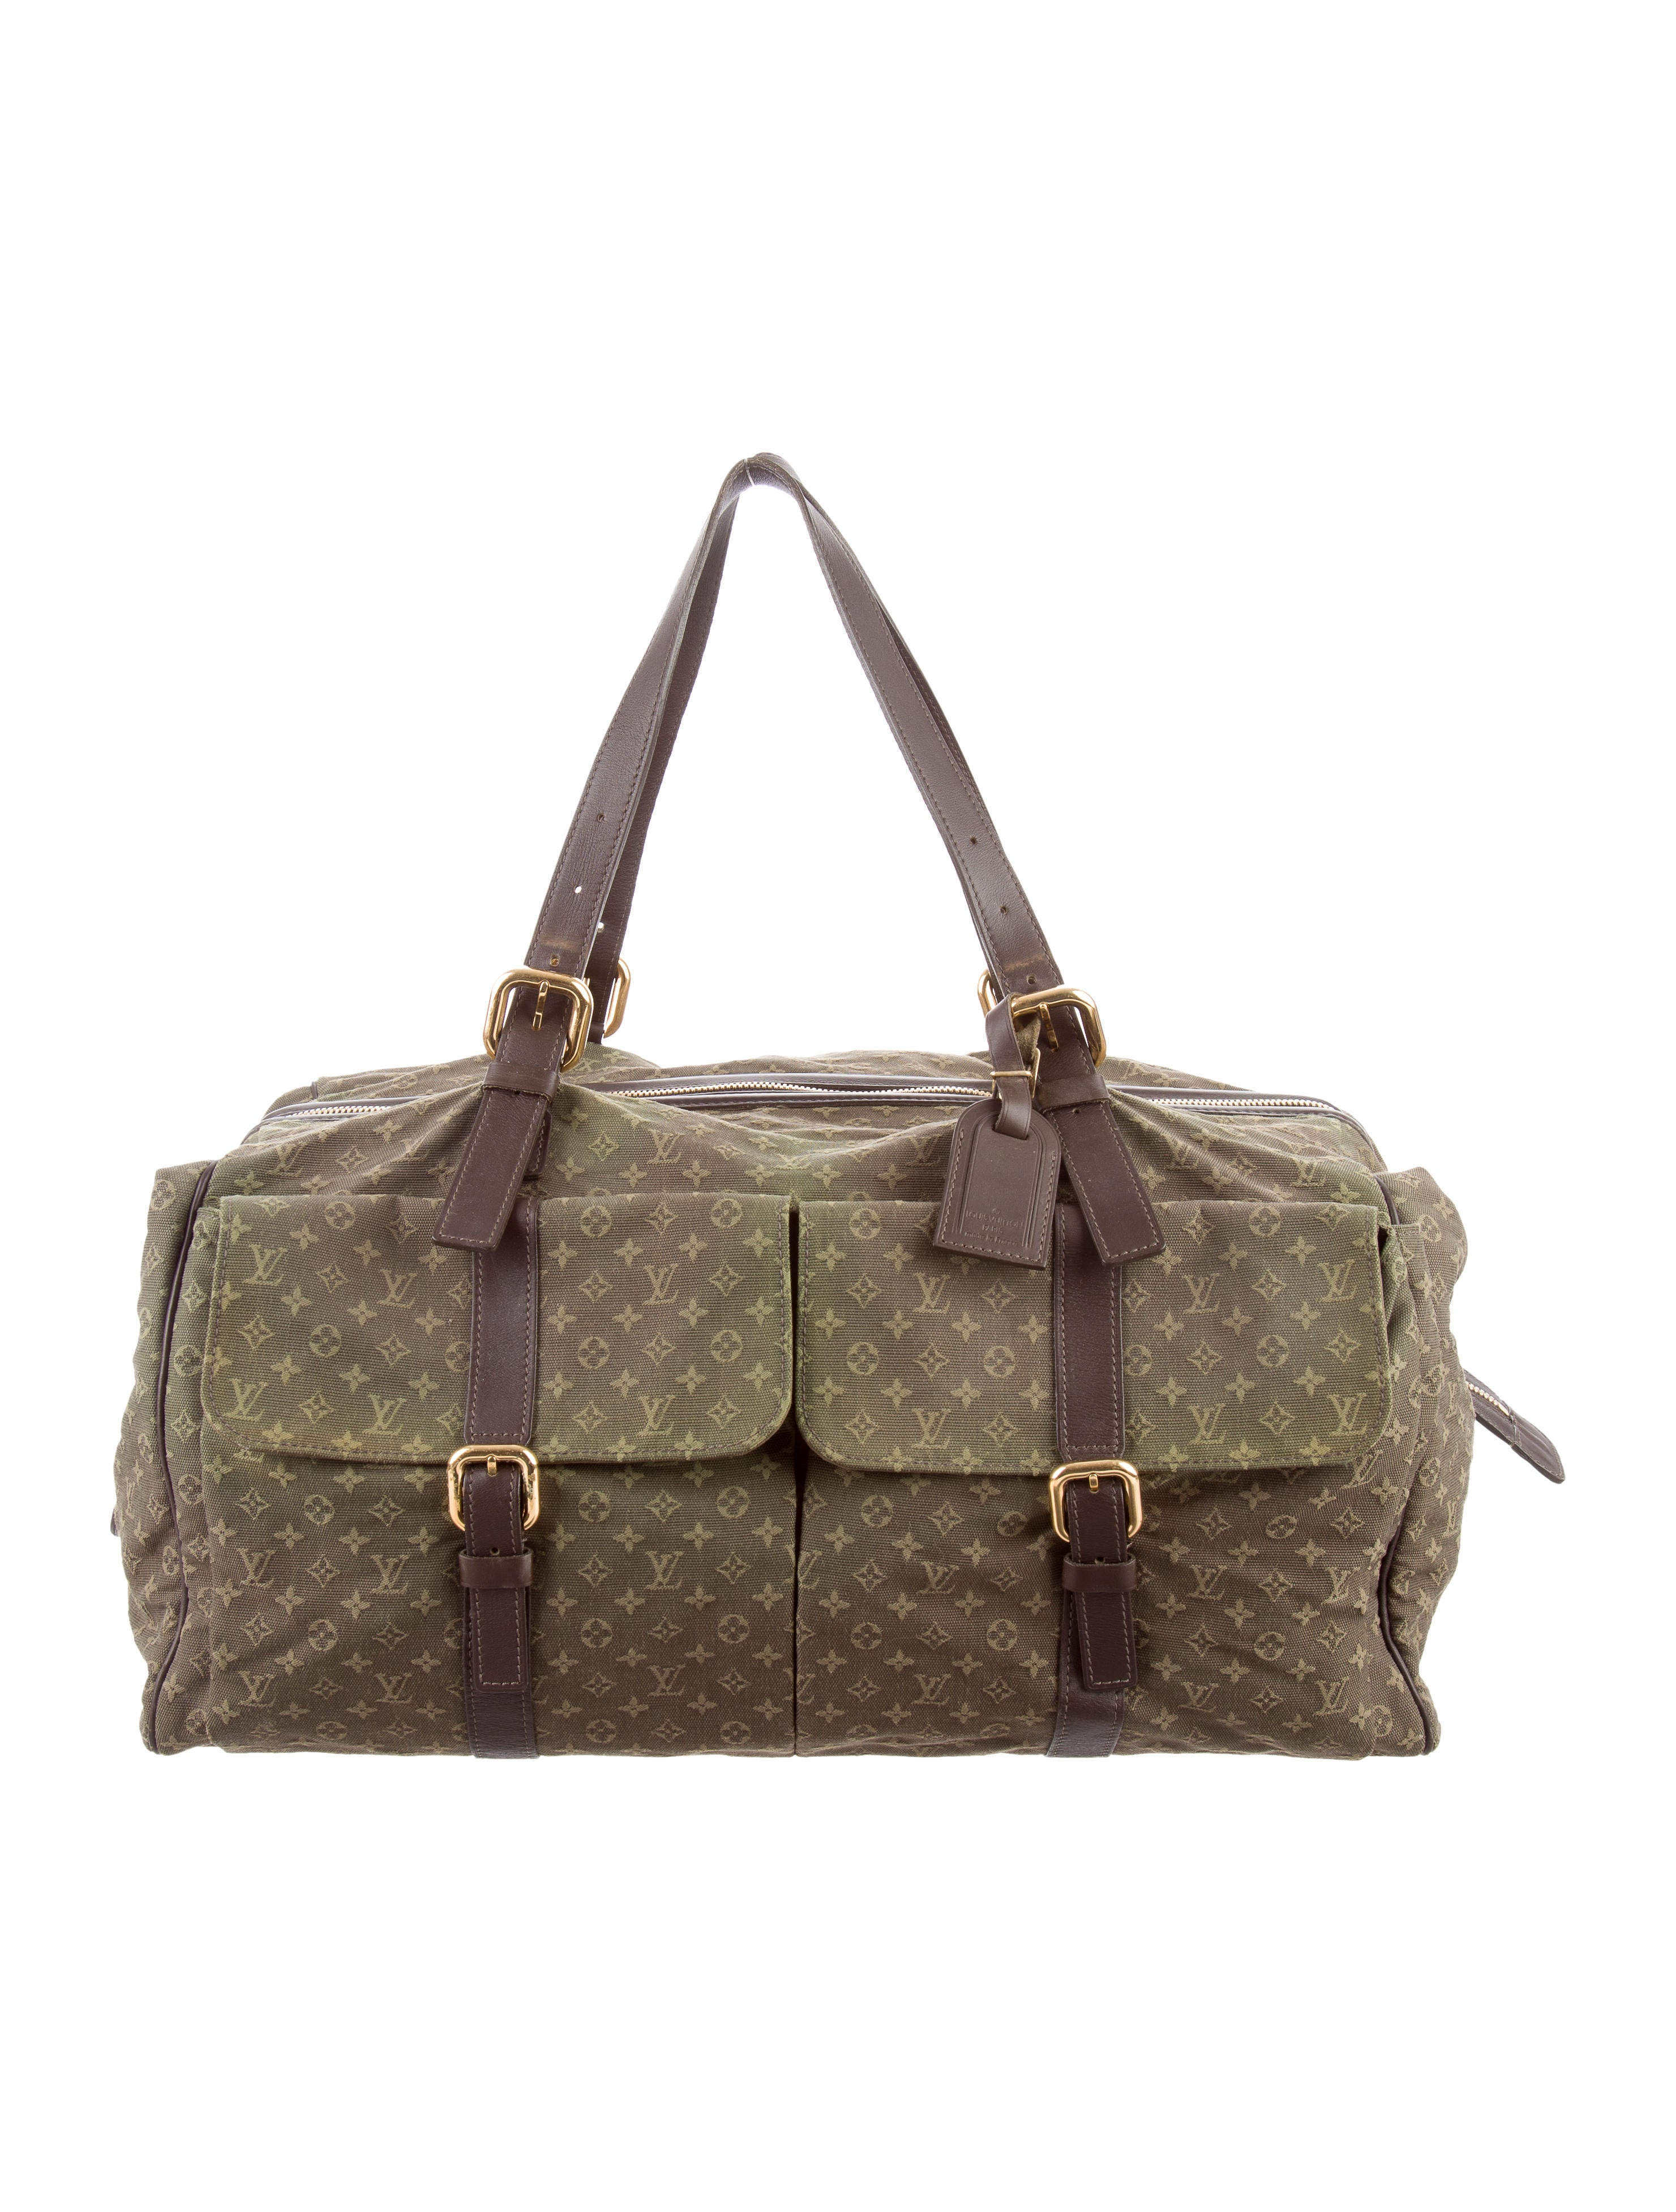 louis vuitton mini lin louise weekender bag handbags lou113589 the realreal. Black Bedroom Furniture Sets. Home Design Ideas